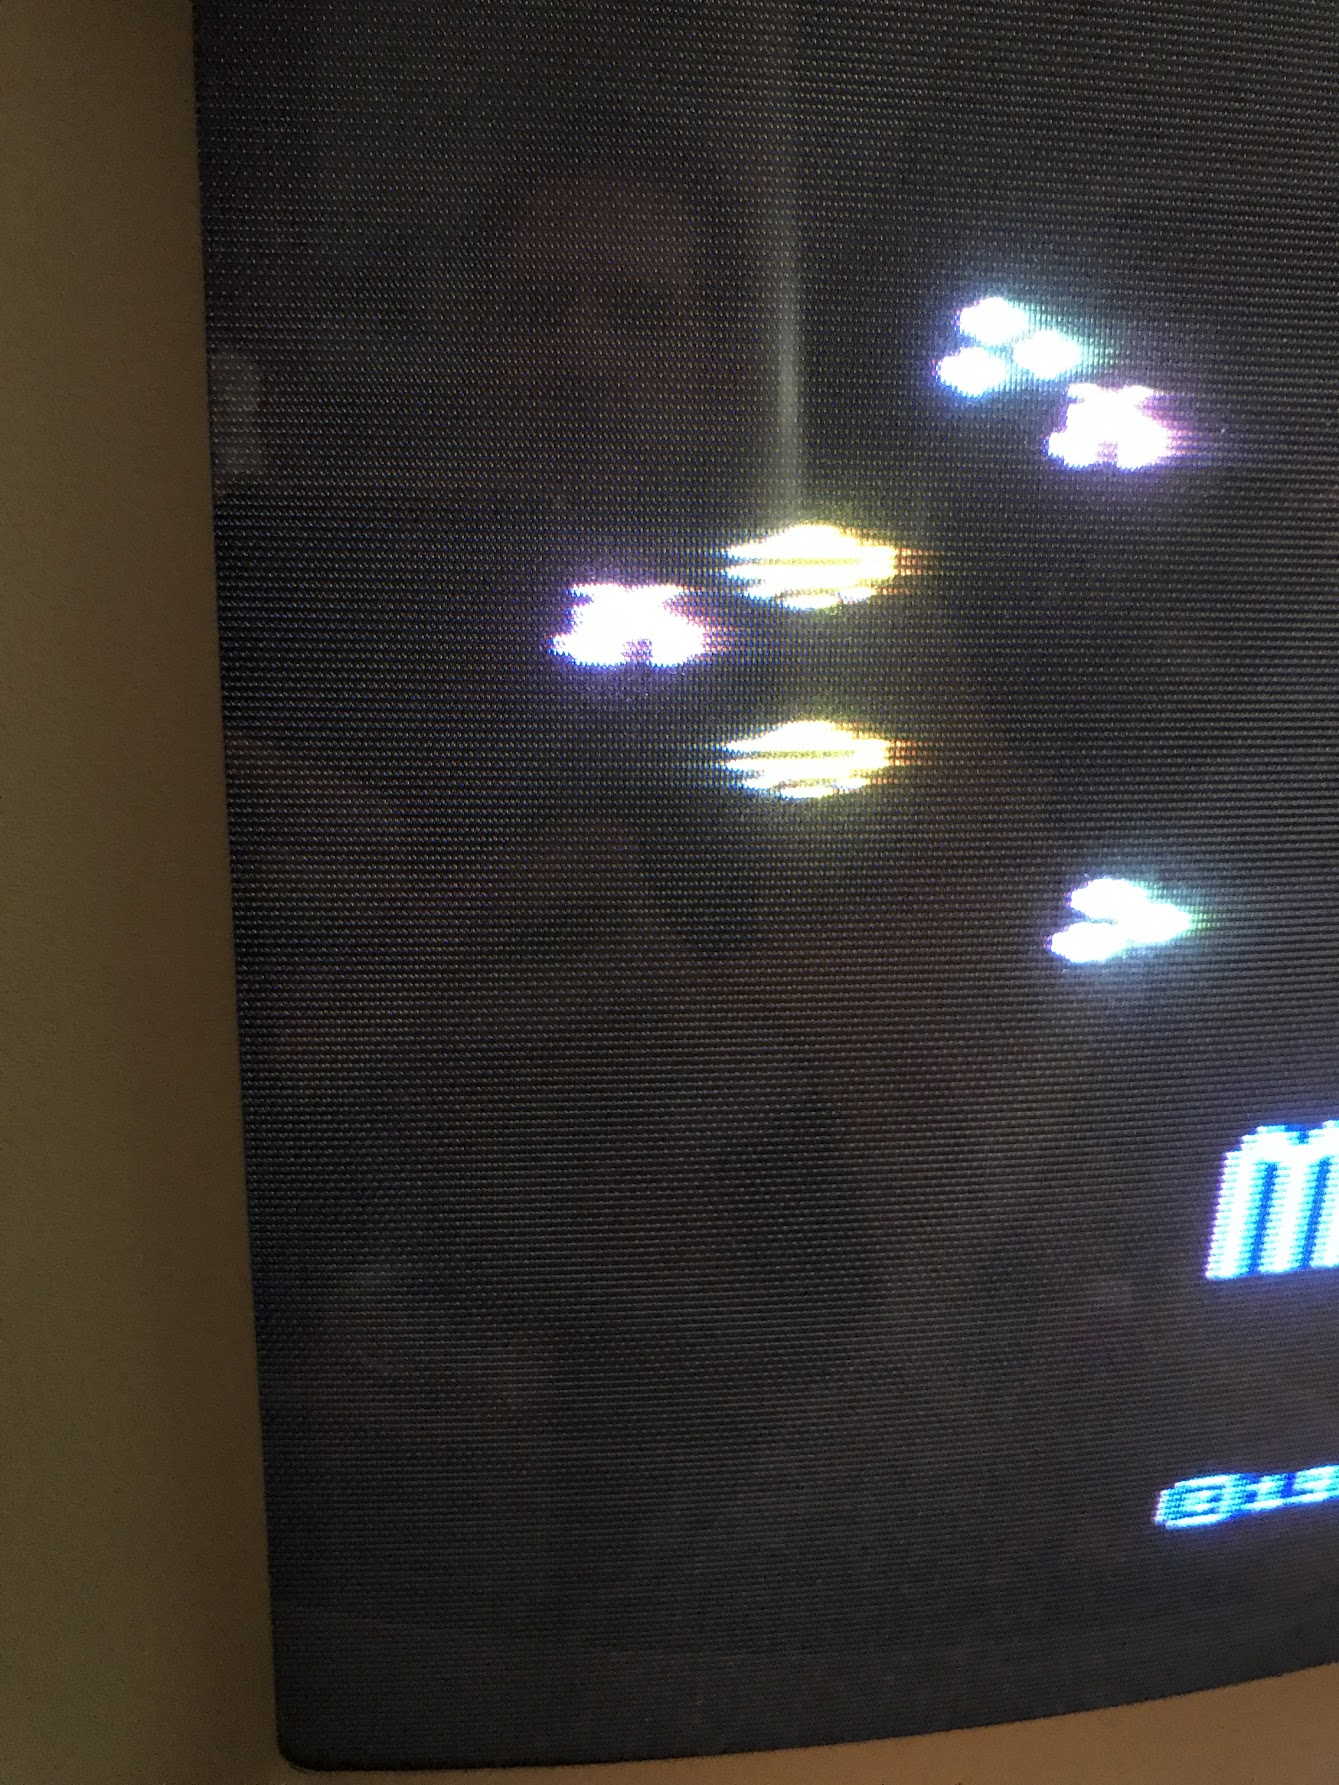 Blue Vertical Lines on 2600 - Atari 2600 - AtariAge Forums